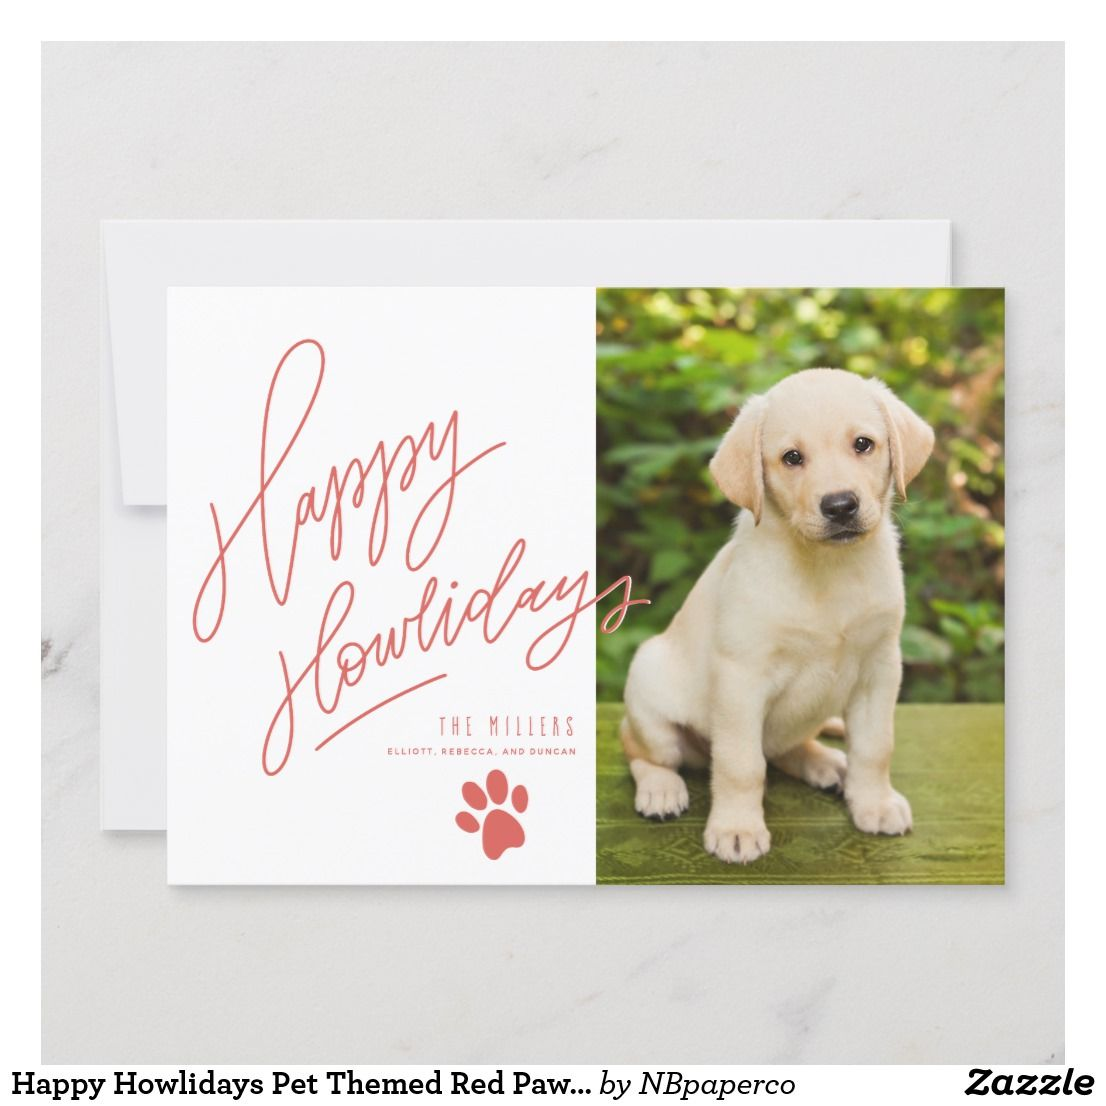 Hy Howlidays Pet Themed Red Paw